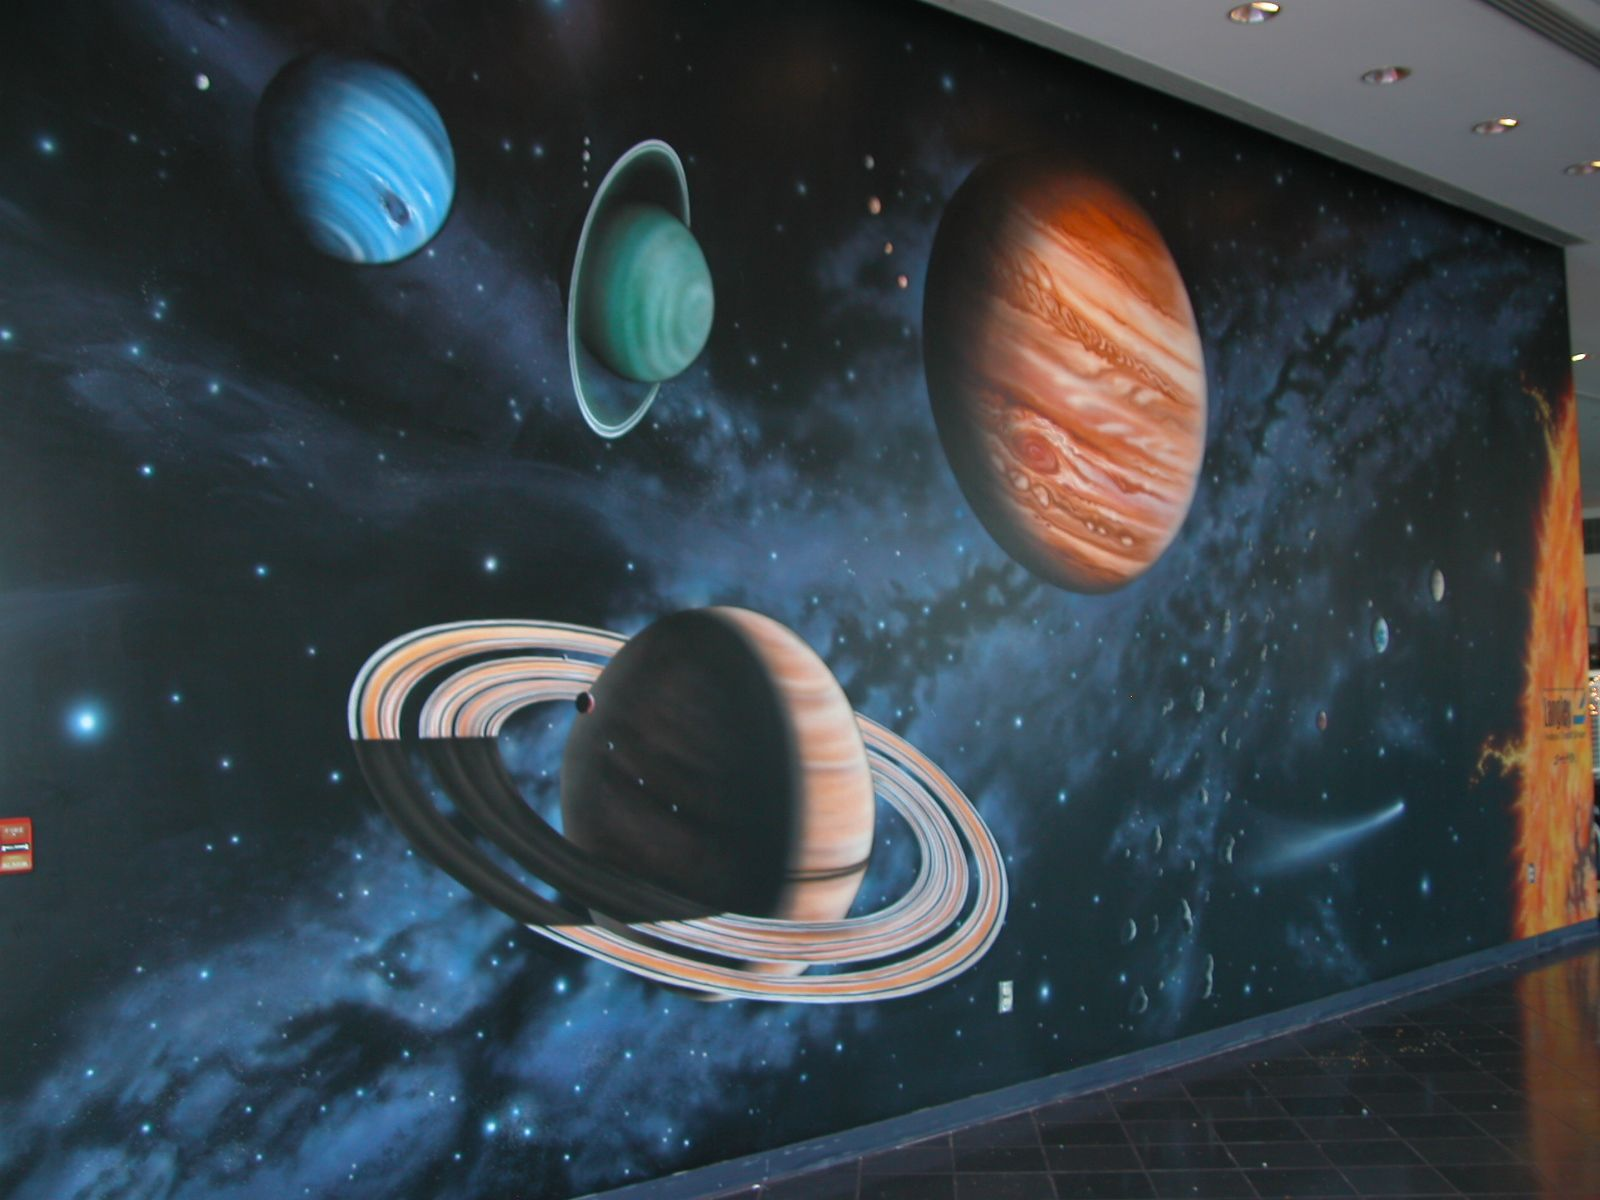 Space wall mural for m 39 boys pinterest wall murals for Astronaut wall mural